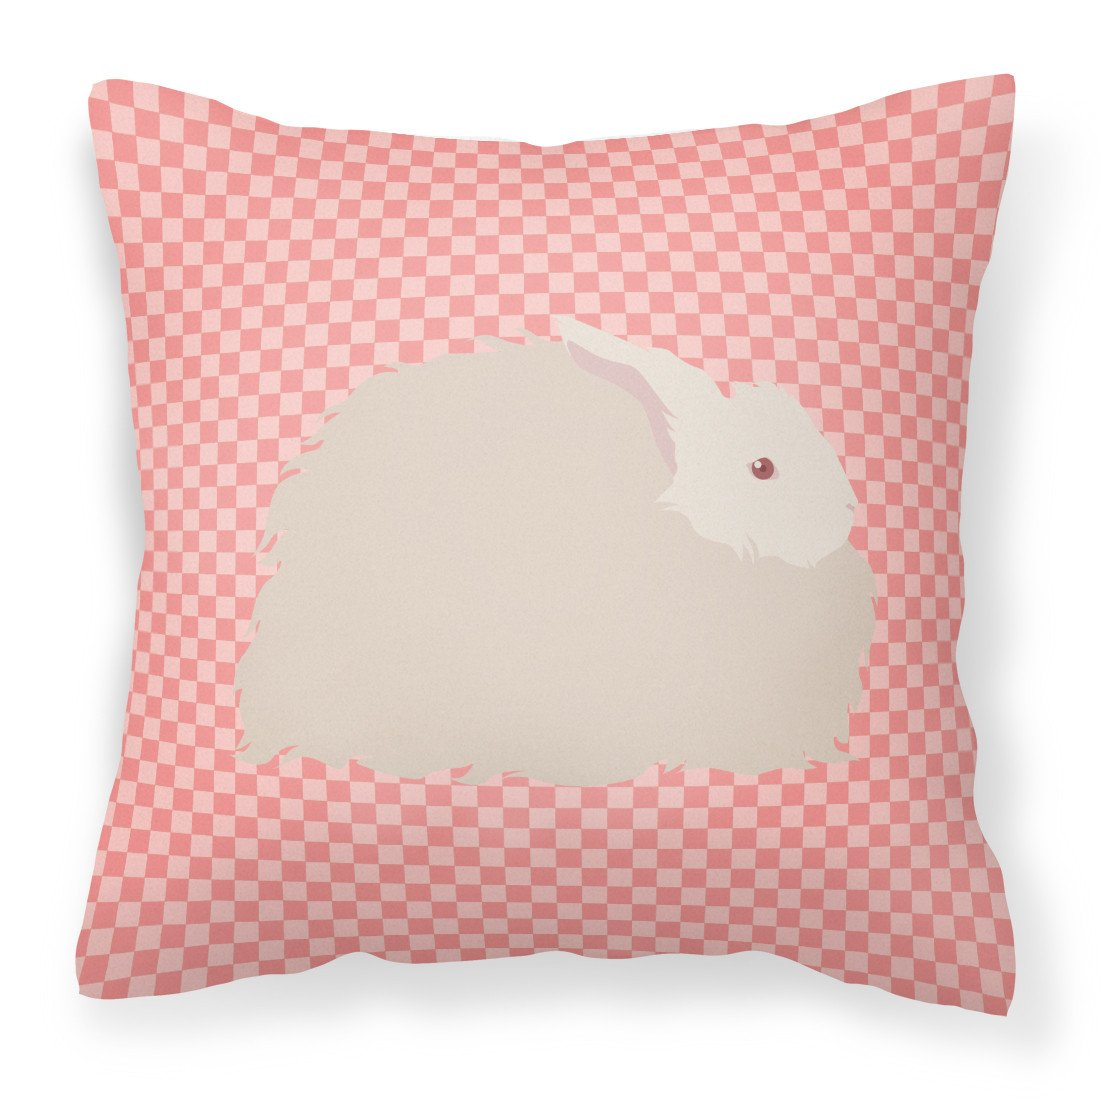 Fluffy Angora Rabbit Pink Check Fabric Decorative Pillow BB7959PW1818 by Caroline's Treasures